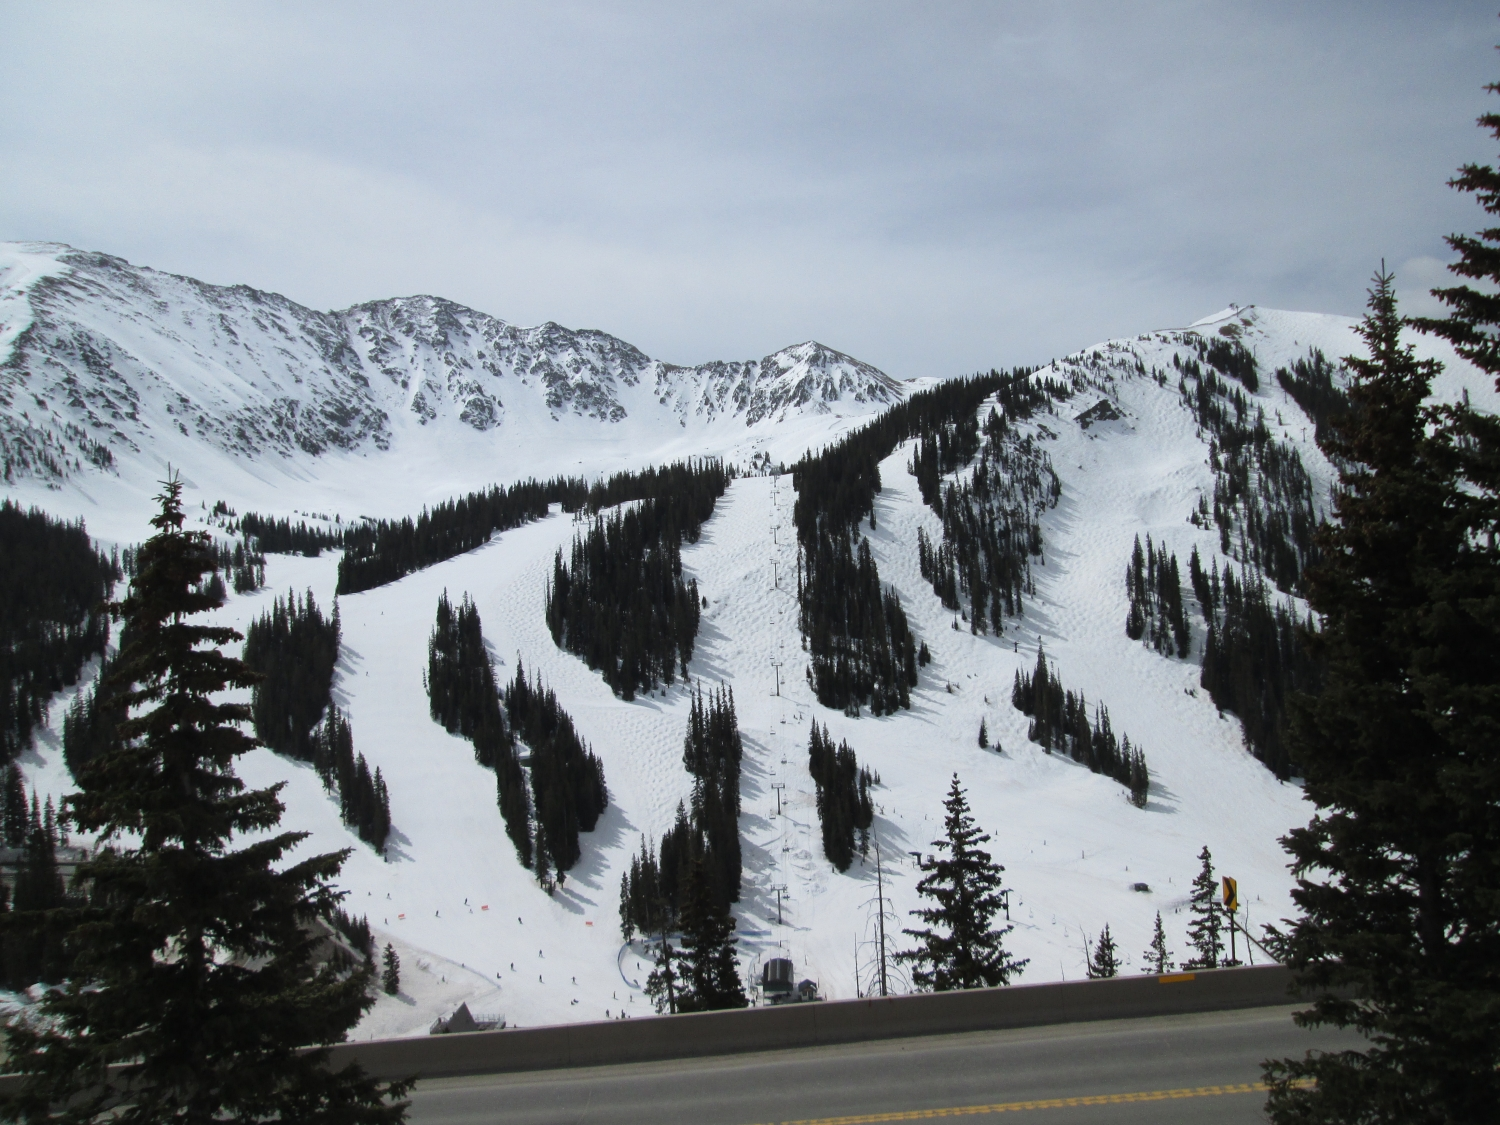 Arapahoe Basin with 'white' snow conditions